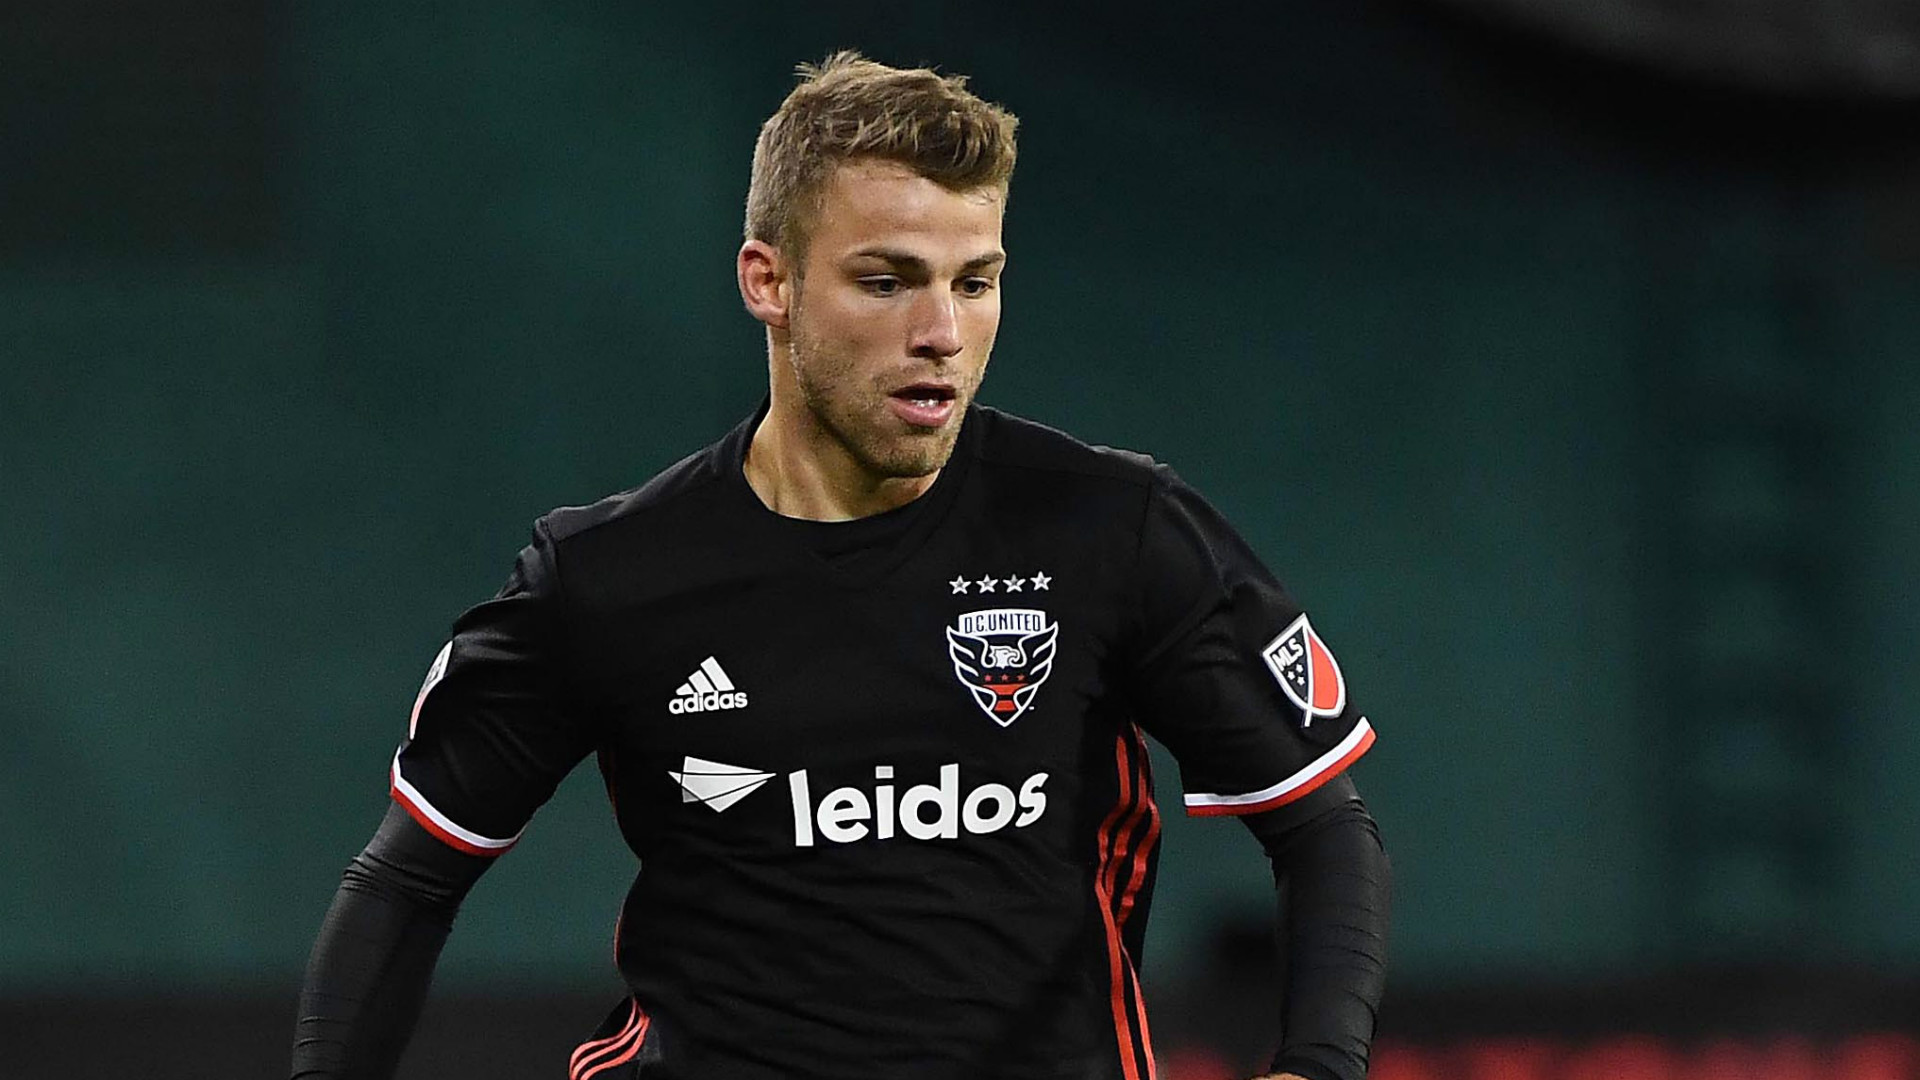 Julian Buscher D.C. United